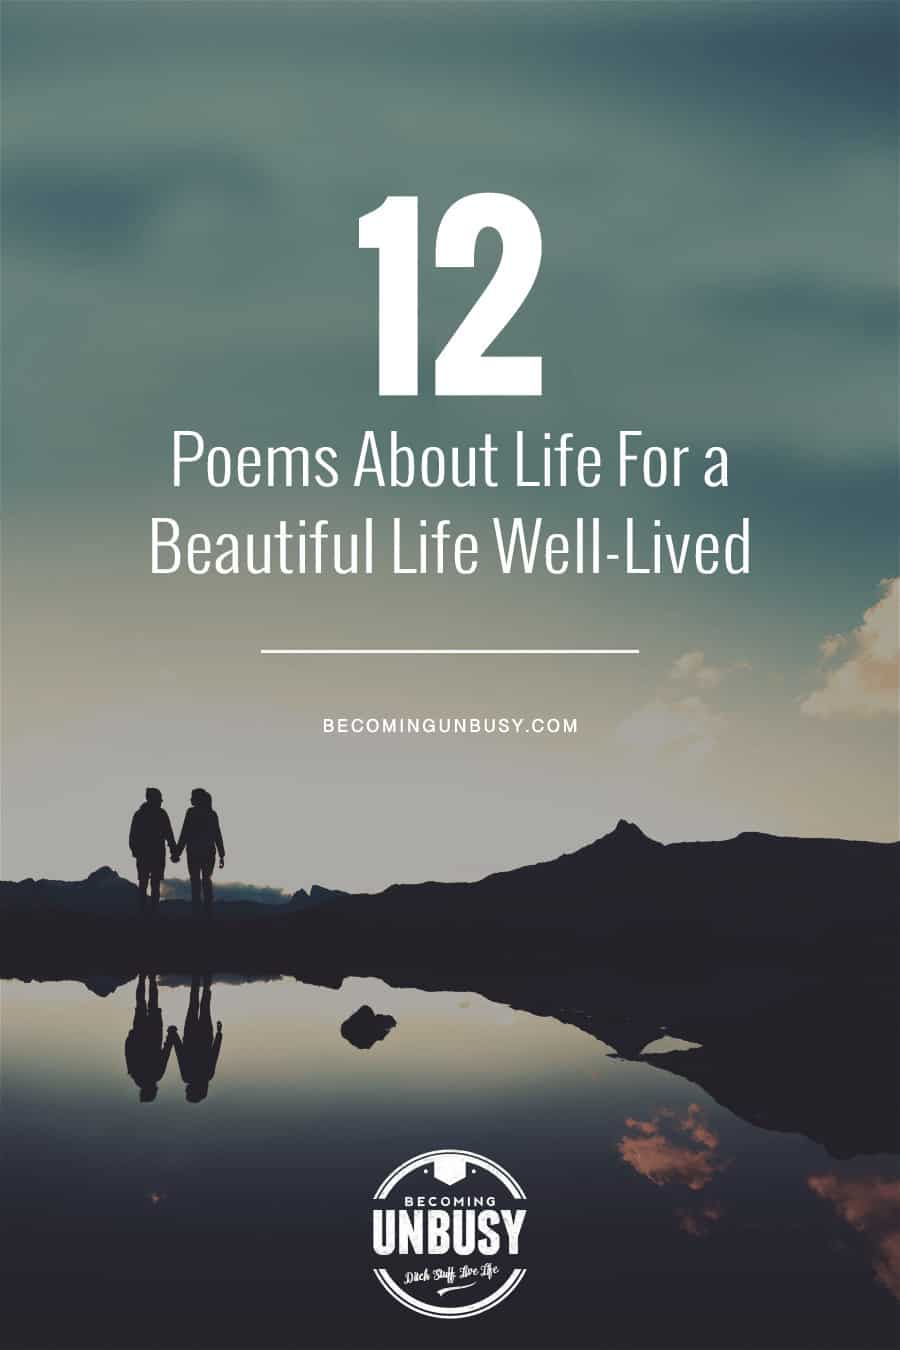 12 Poems About Life For a Beautiful Life Well-Lived - Whether you're looking for poems of encouragement for yourself or poems about life to celebrate someone you love, you'll find a wonderful collection of inspirational messages here. #poems #lifequotes #poetry *Loving this collection of poems